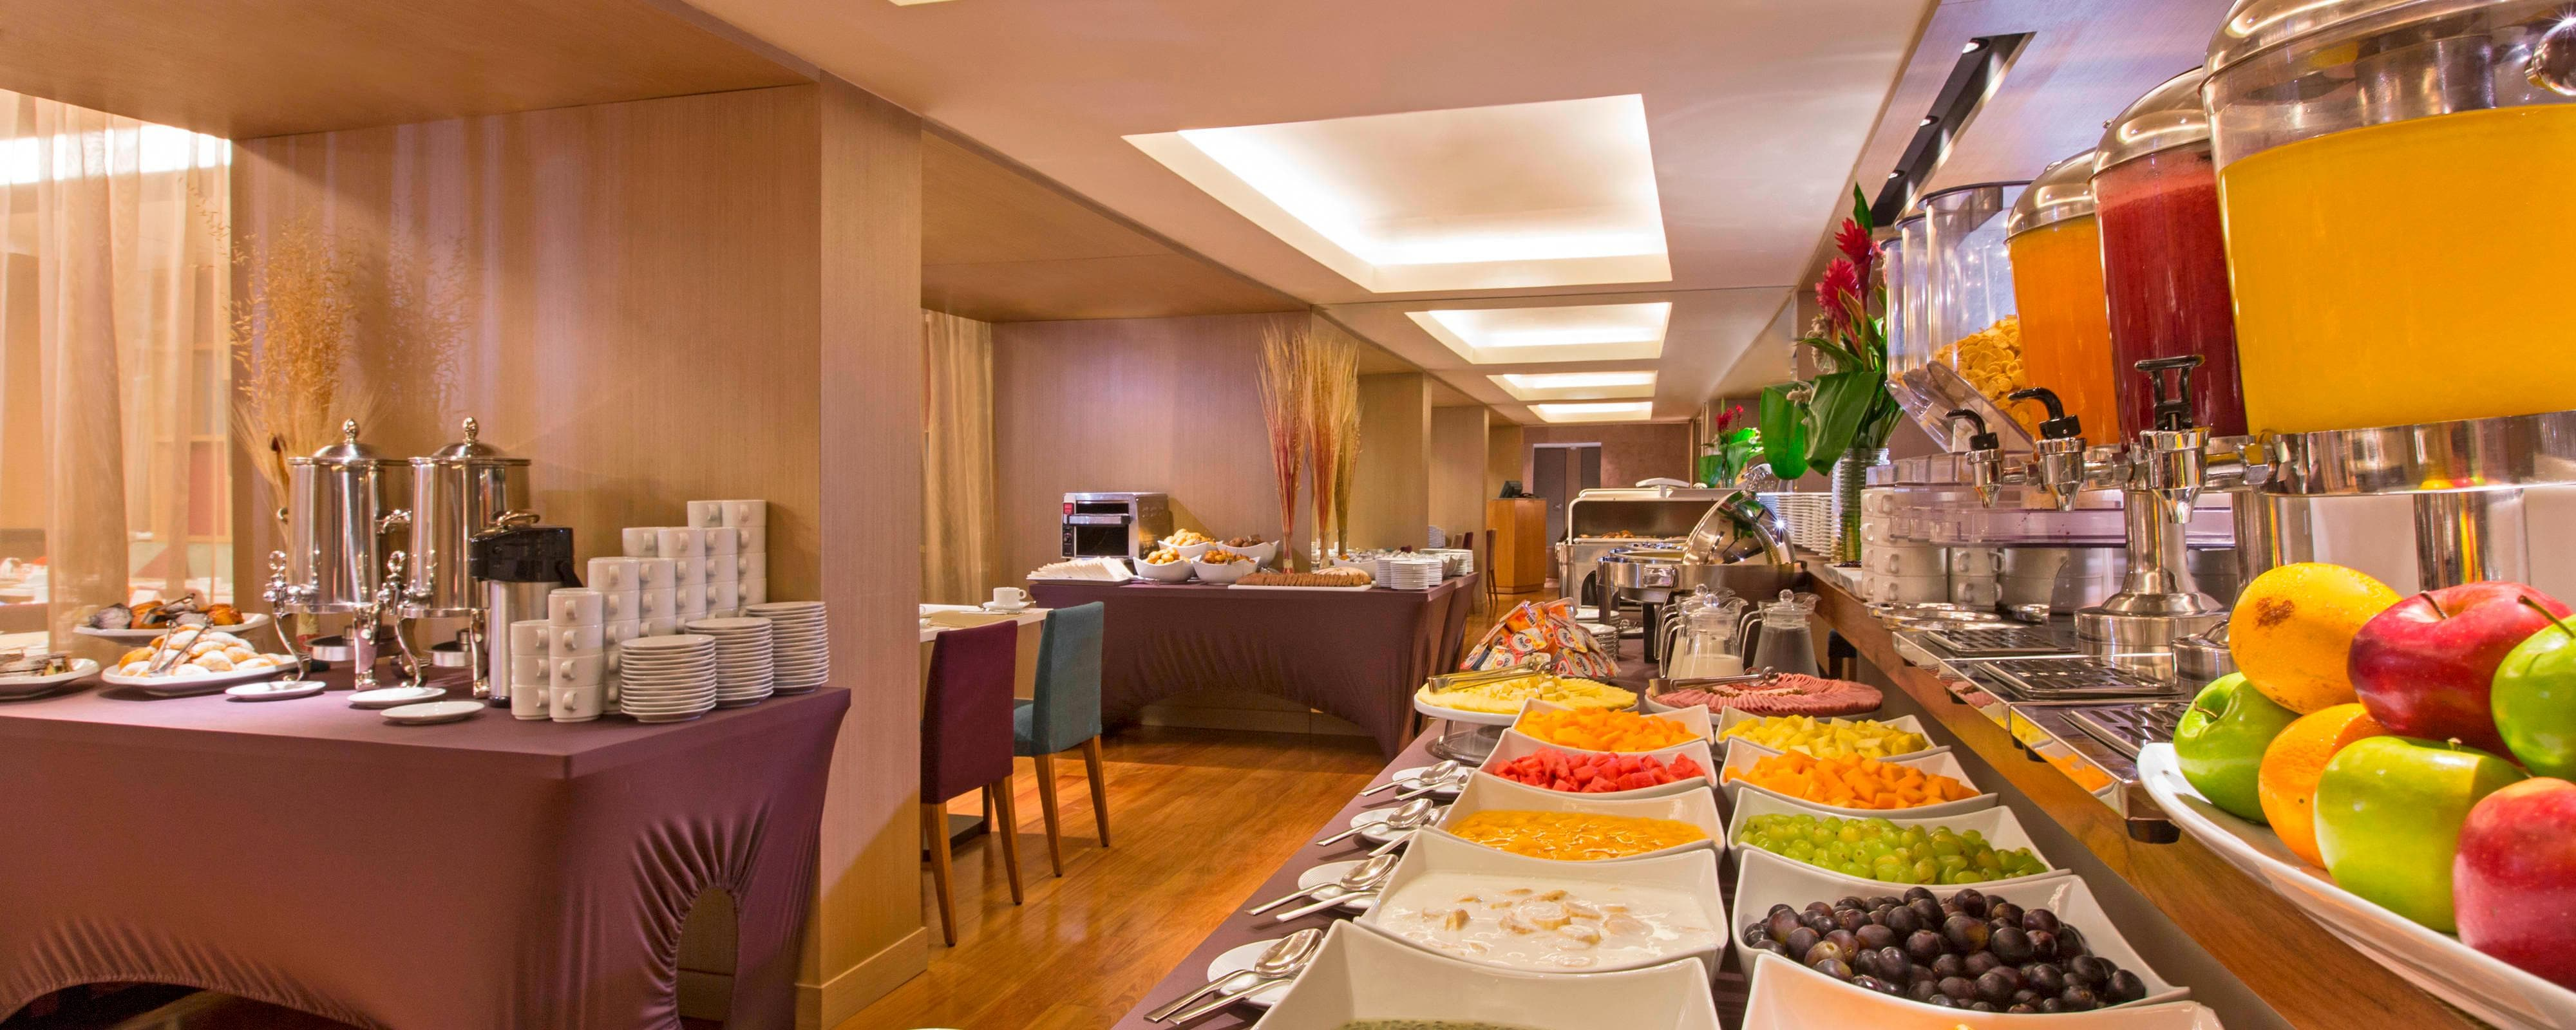 Remarkable Hotels With Free Breakfast In Miraflores Four Points By Home Interior And Landscaping Palasignezvosmurscom